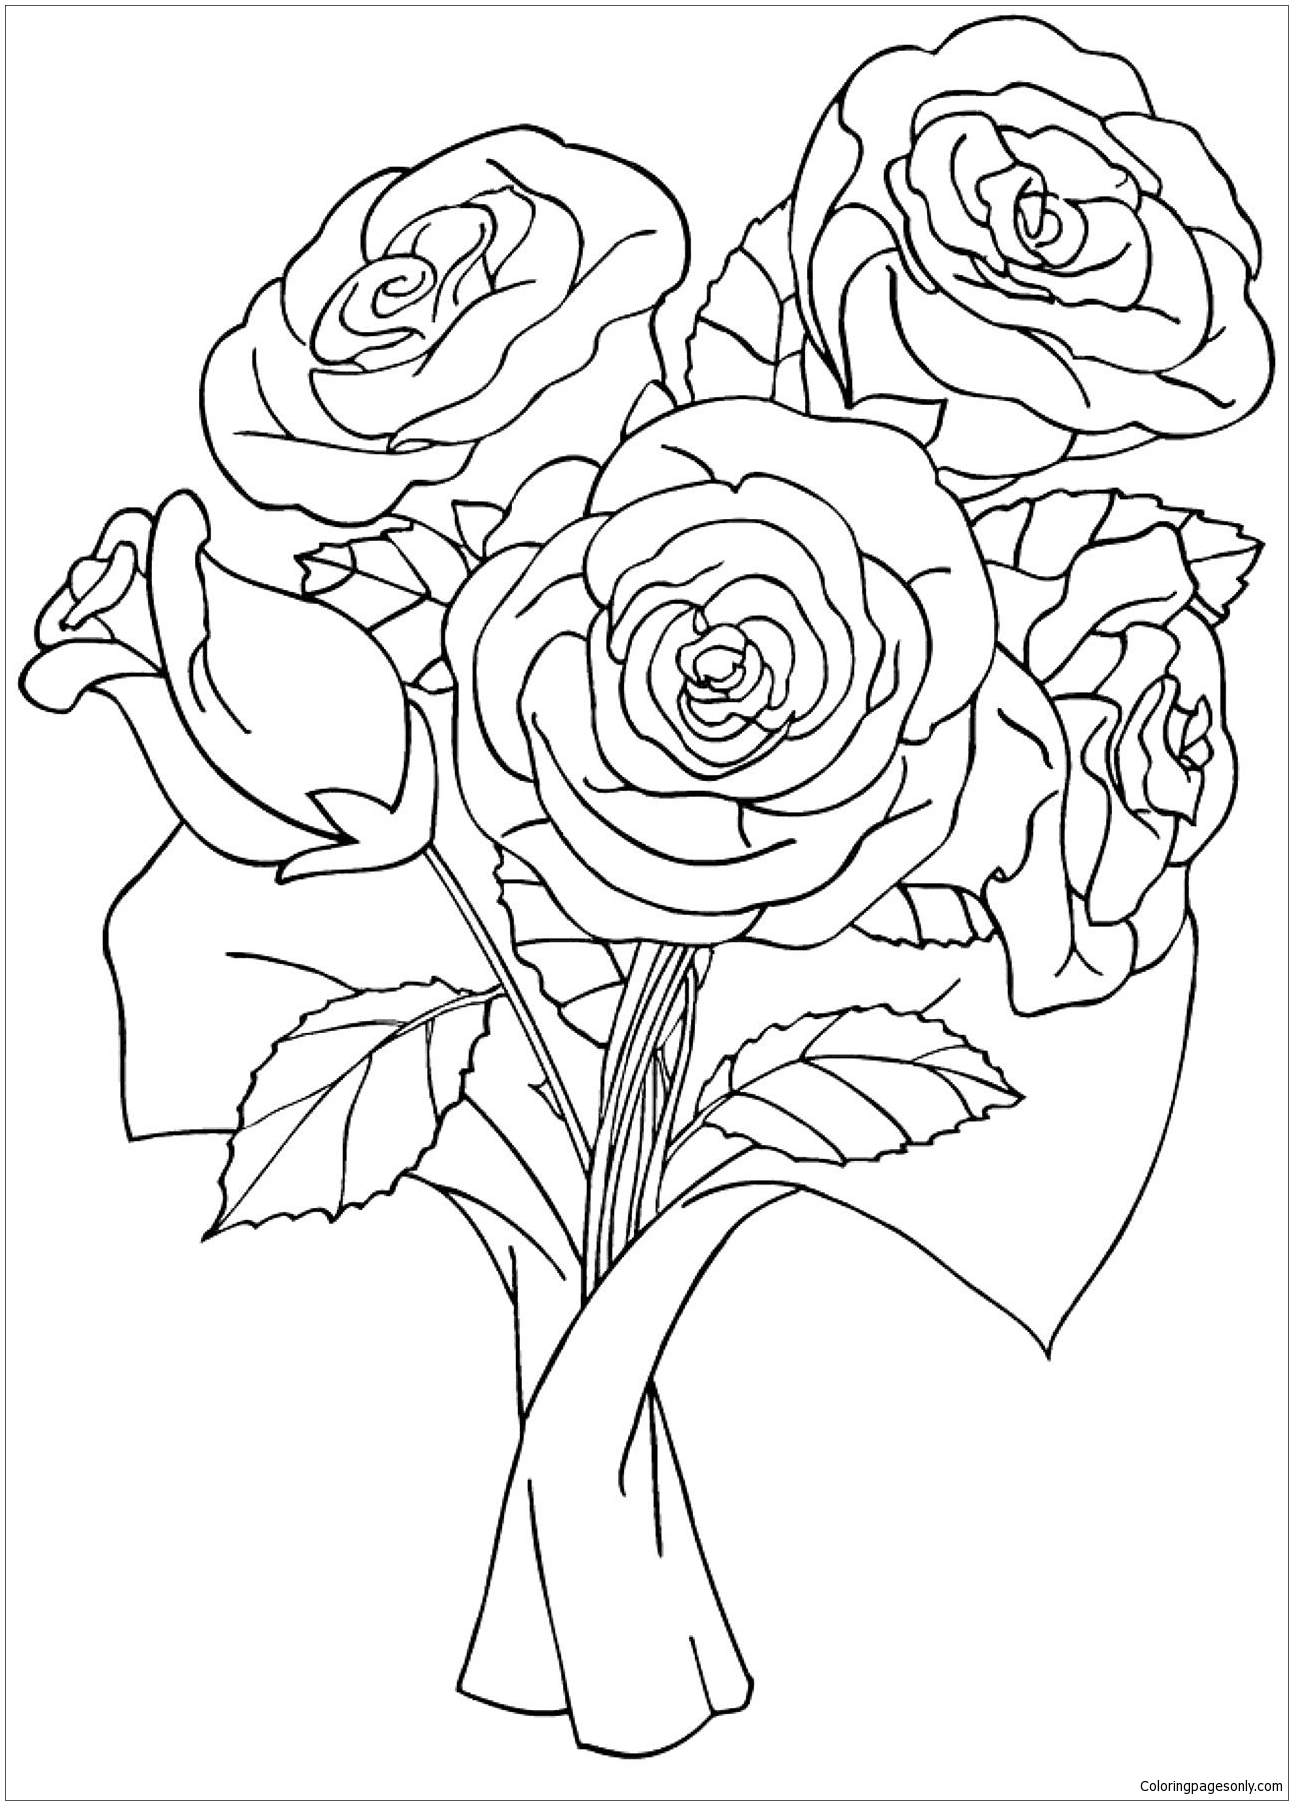 rose coloring pages to print free printable roses coloring pages for kids pages to print rose coloring